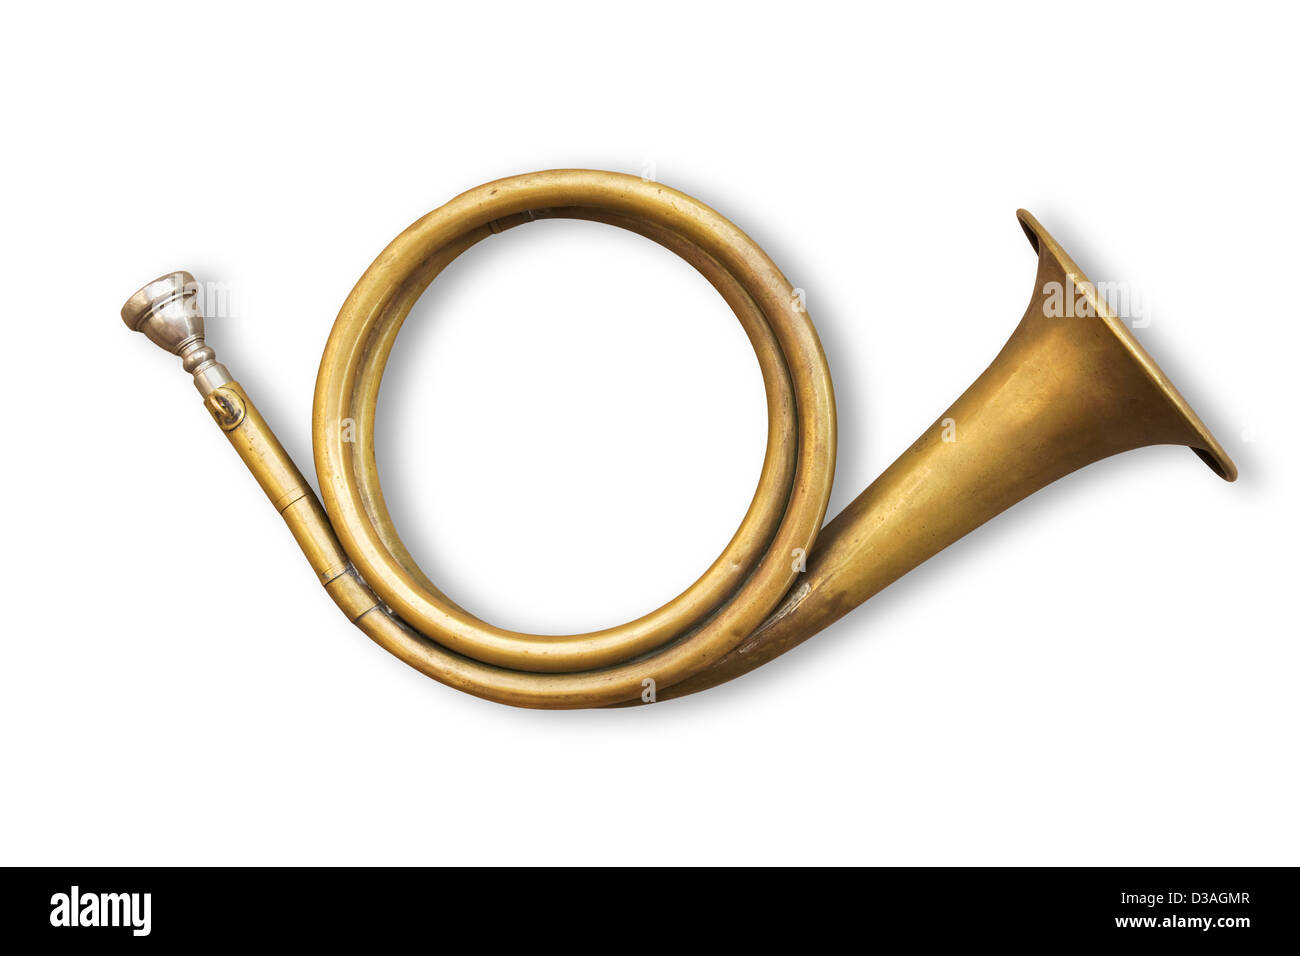 copper hunting horn with clipping path included - Stock Image